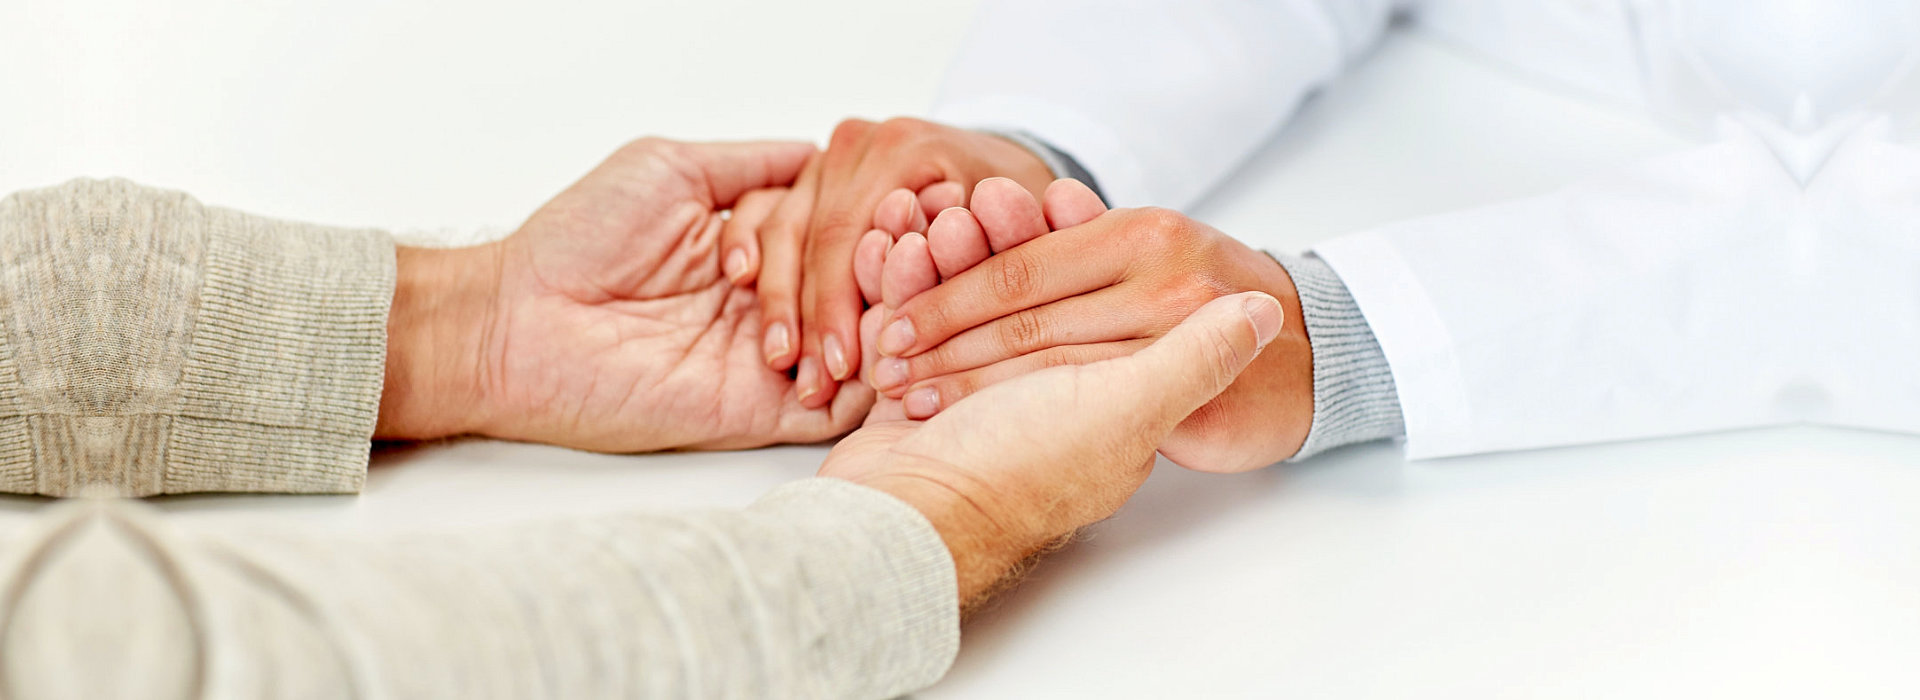 Caregiver is holding the hands of the patient